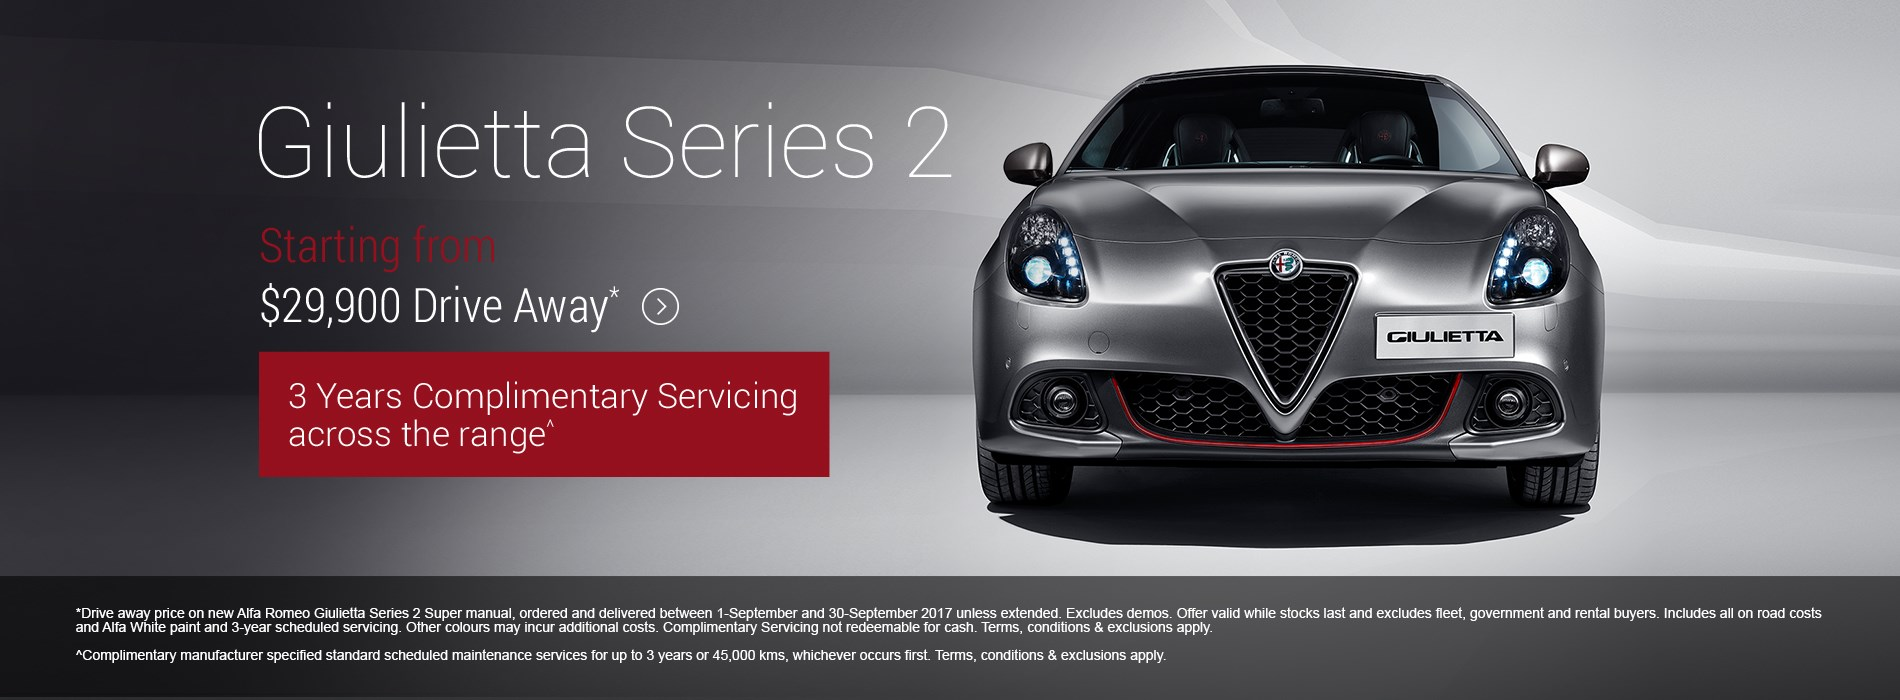 alfa romeo giulietta series 2 $29.9k driveaway offer